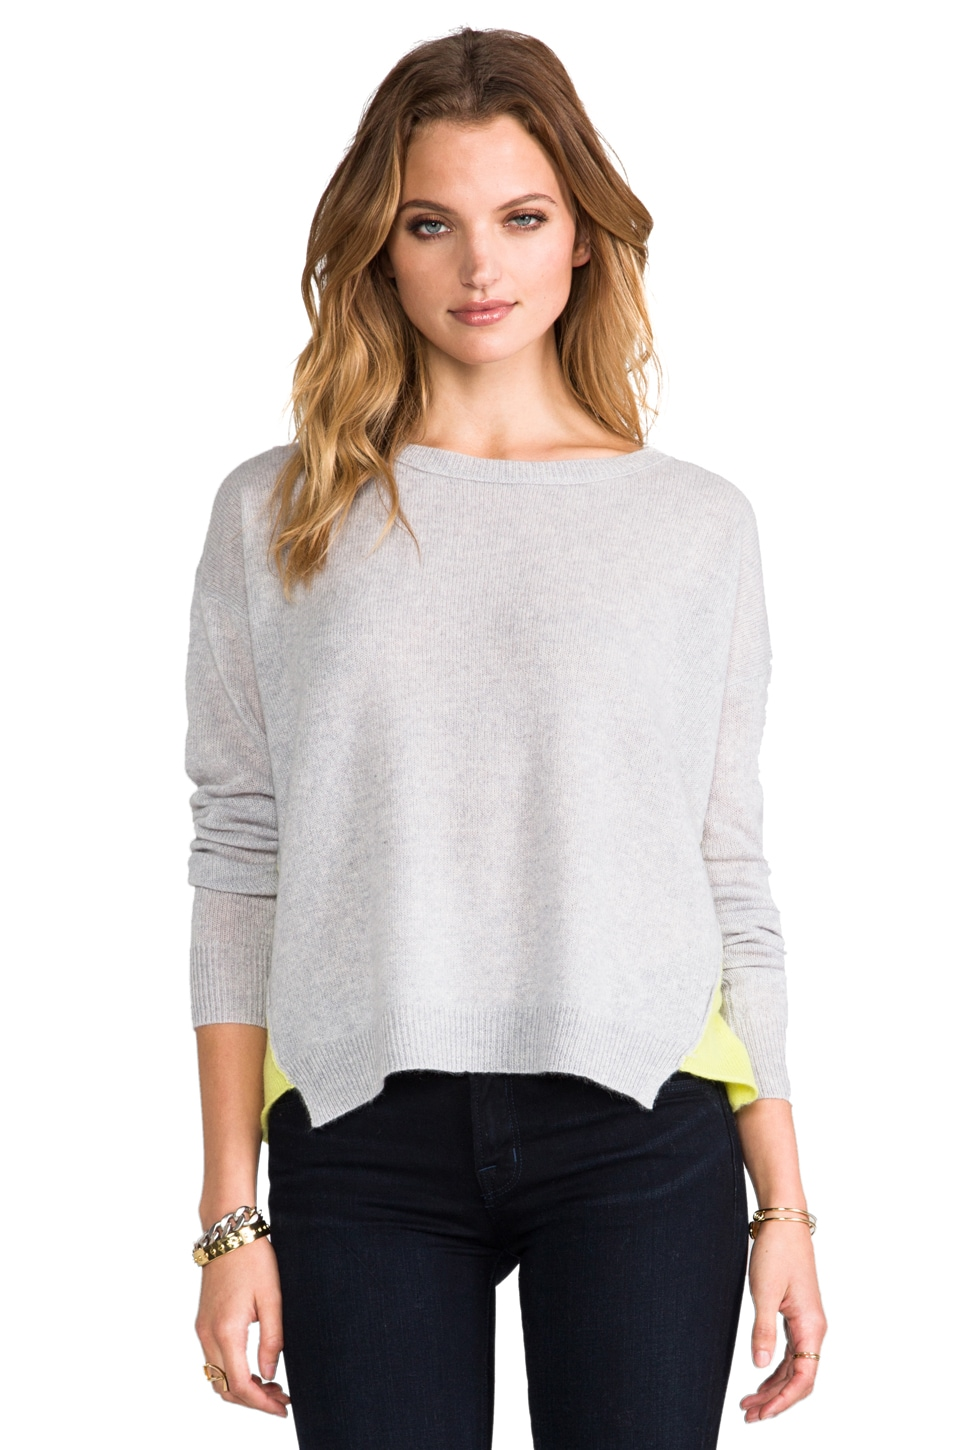 360CASHMERE Devon Cashmere Sweater in Powder Grey/Citron